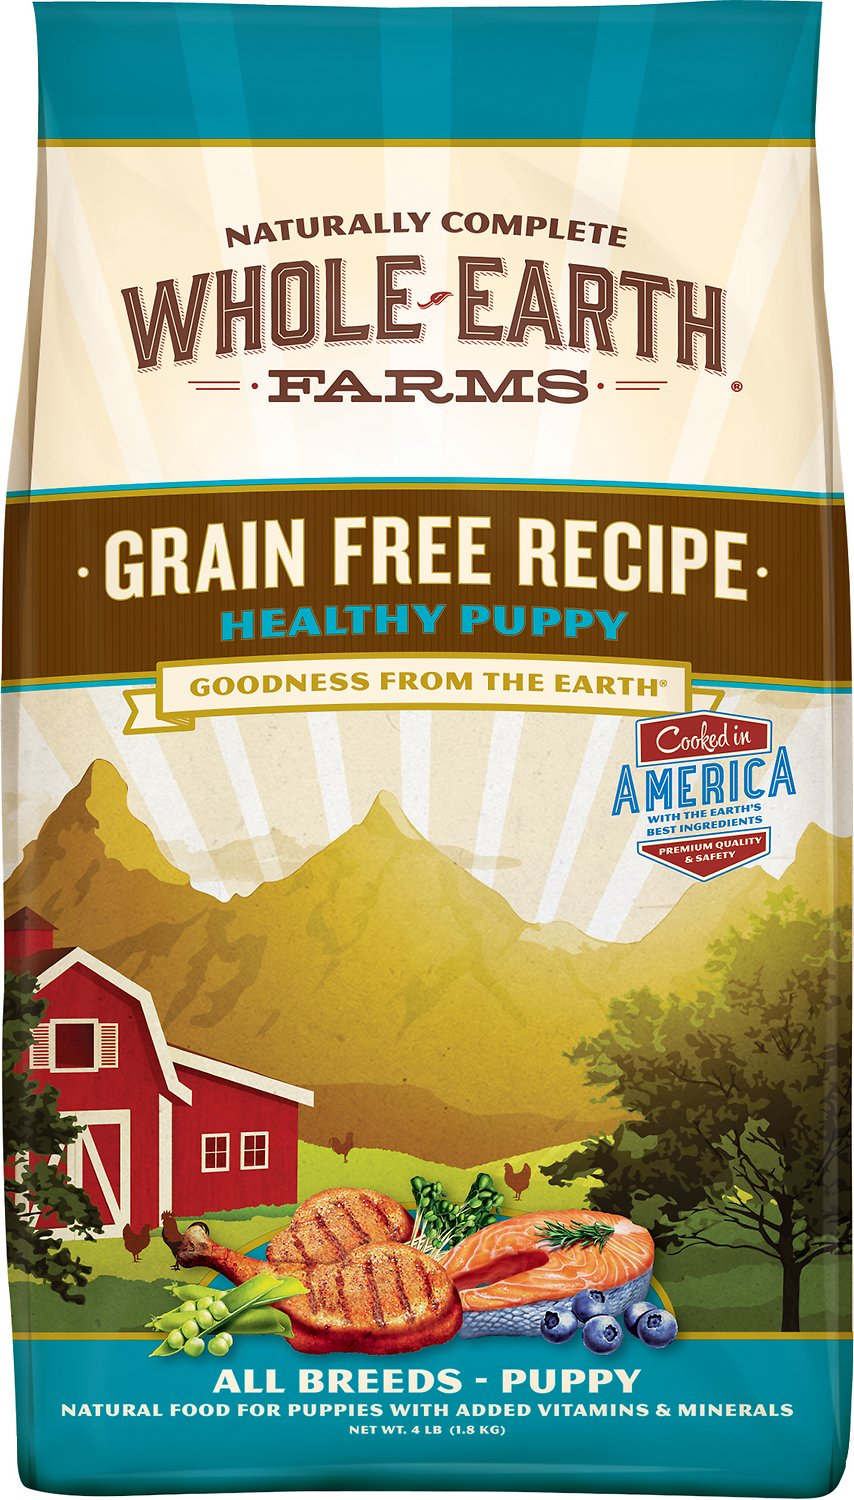 Whole Earth Farms Healthy Puppy Recipe Grain-Free Dry Dog Food Image